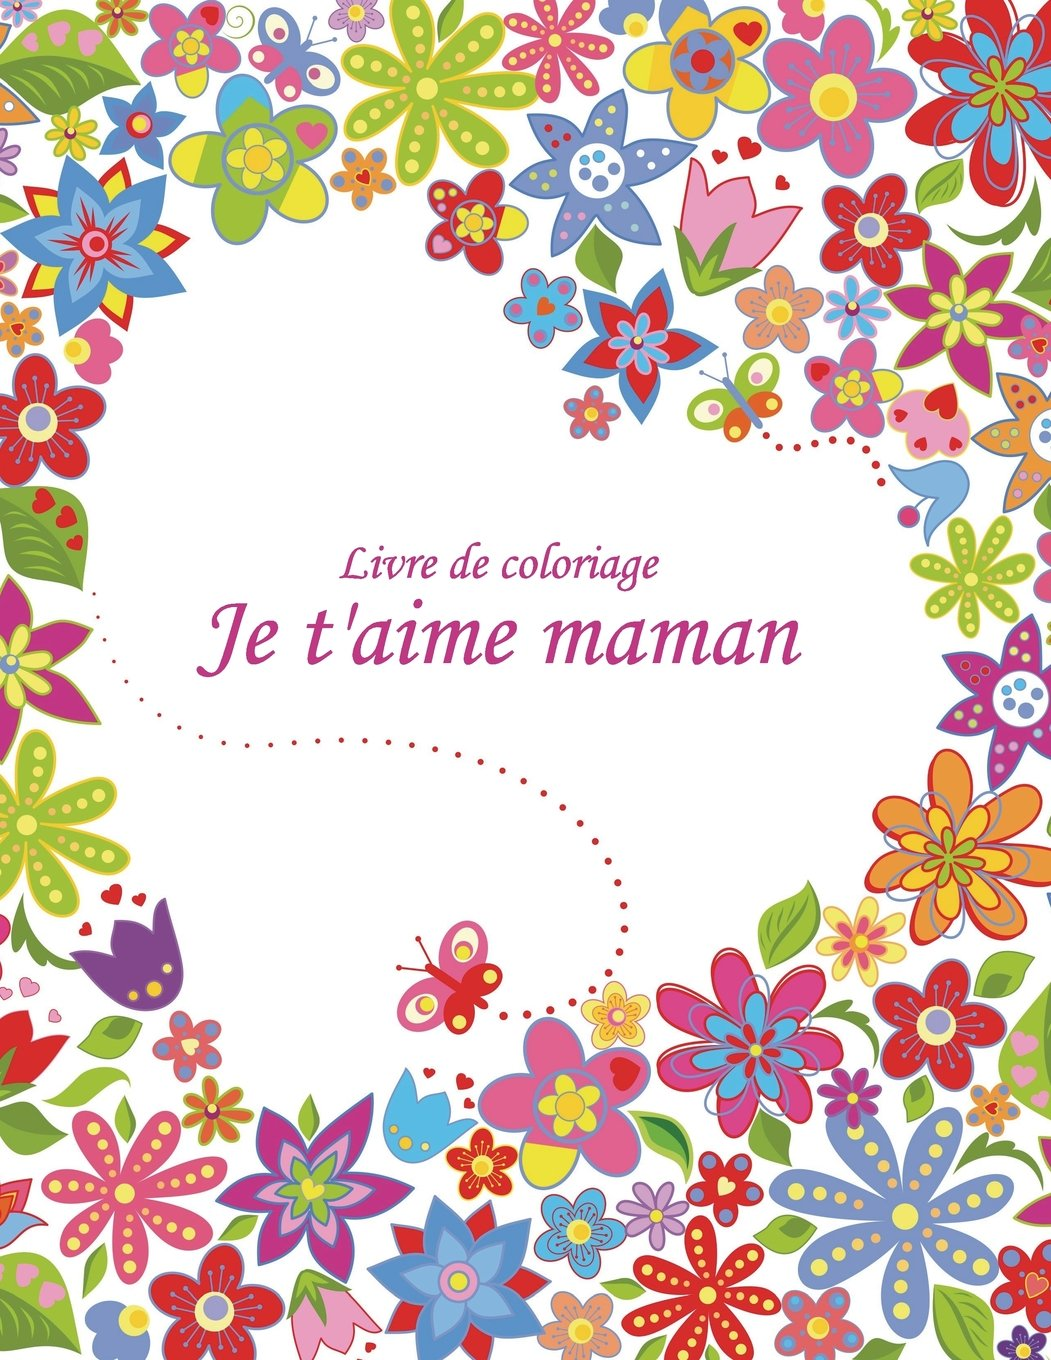 Livre De Coloriage Je T Aime Maman 2 Volume 2 French Edition Snels Nick 9781723205309 Amazon Com Books